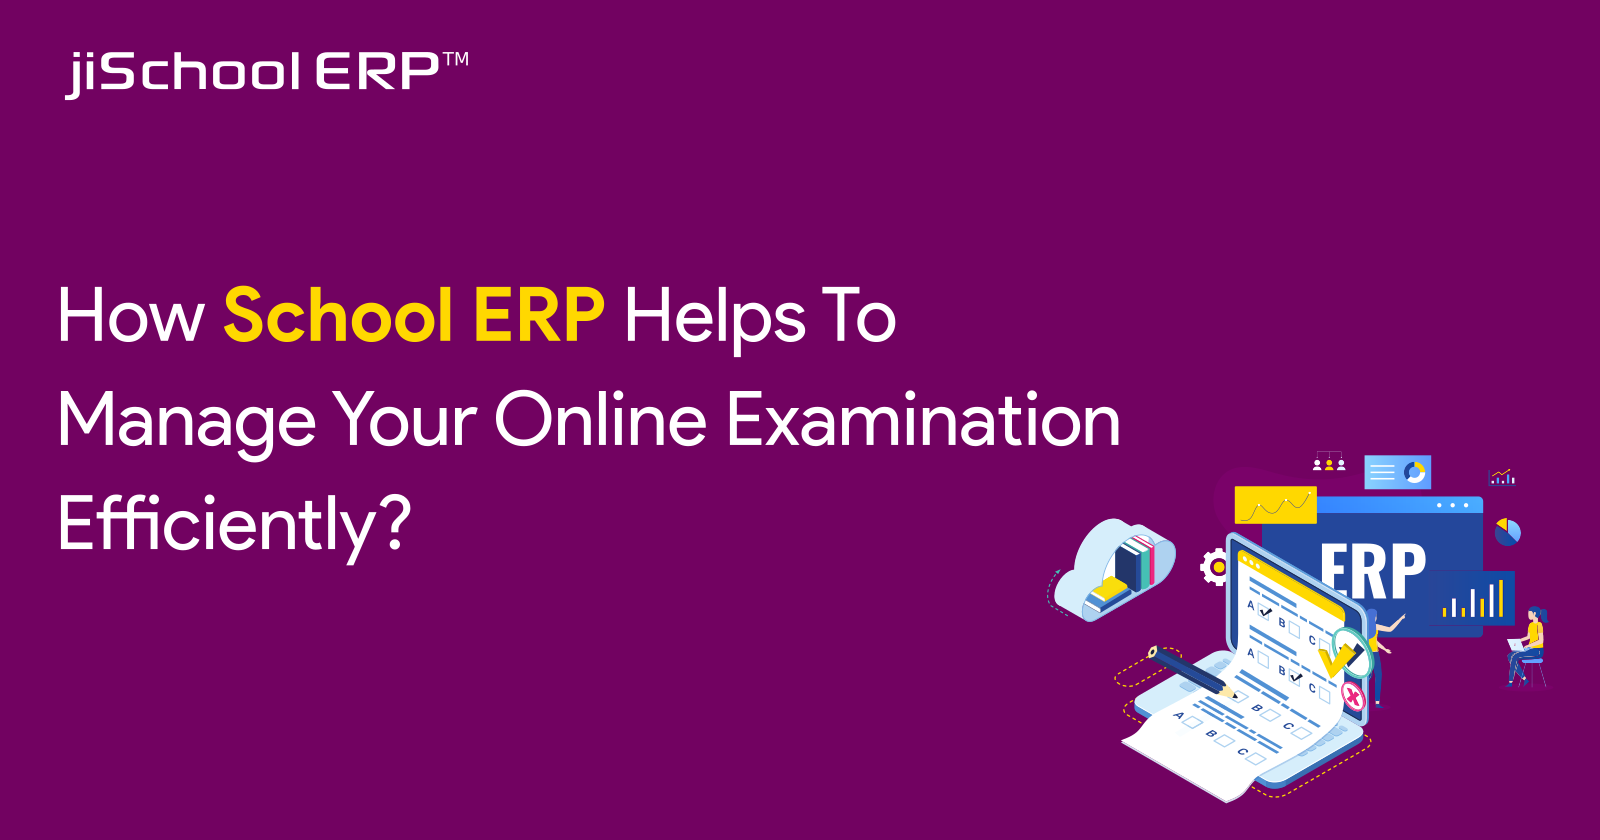 How School ERP Helps to Manage Your Online Examination Efficiently?